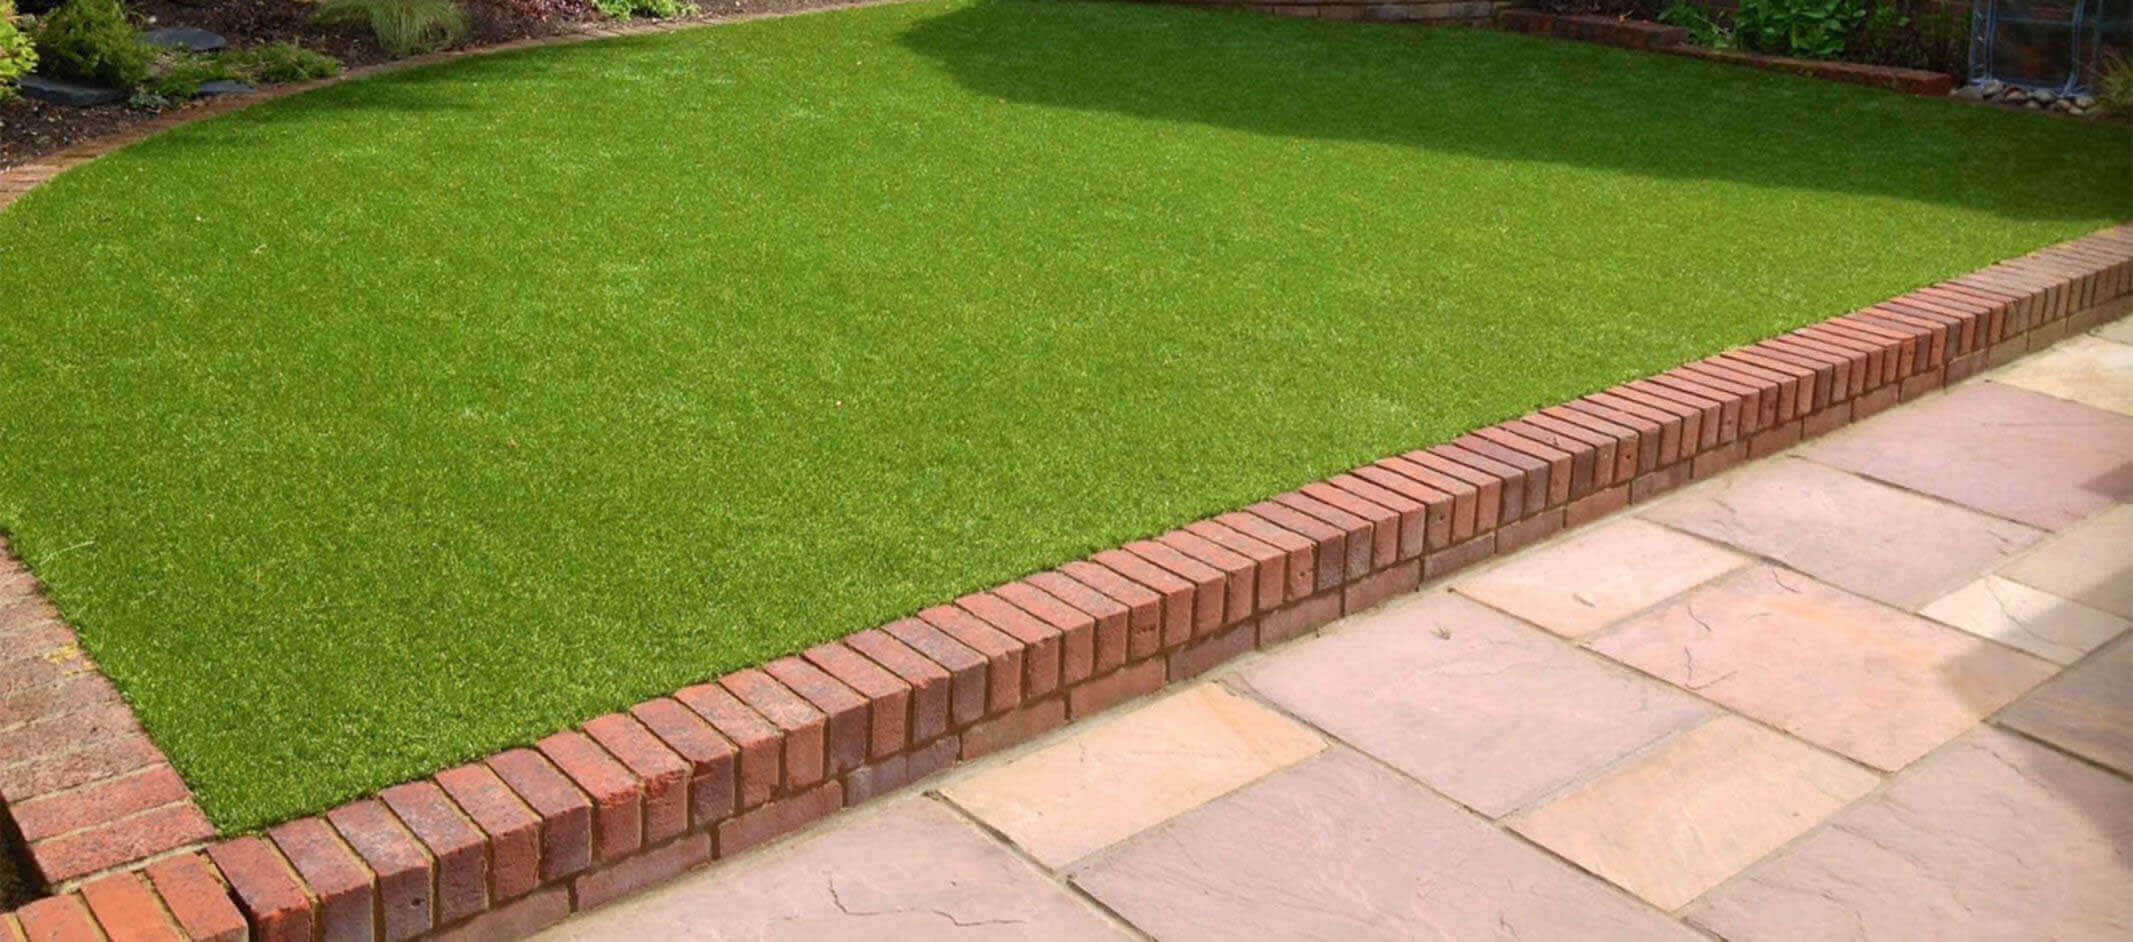 Artificial Turf in Hertfordshire - Premium Artificial Grass